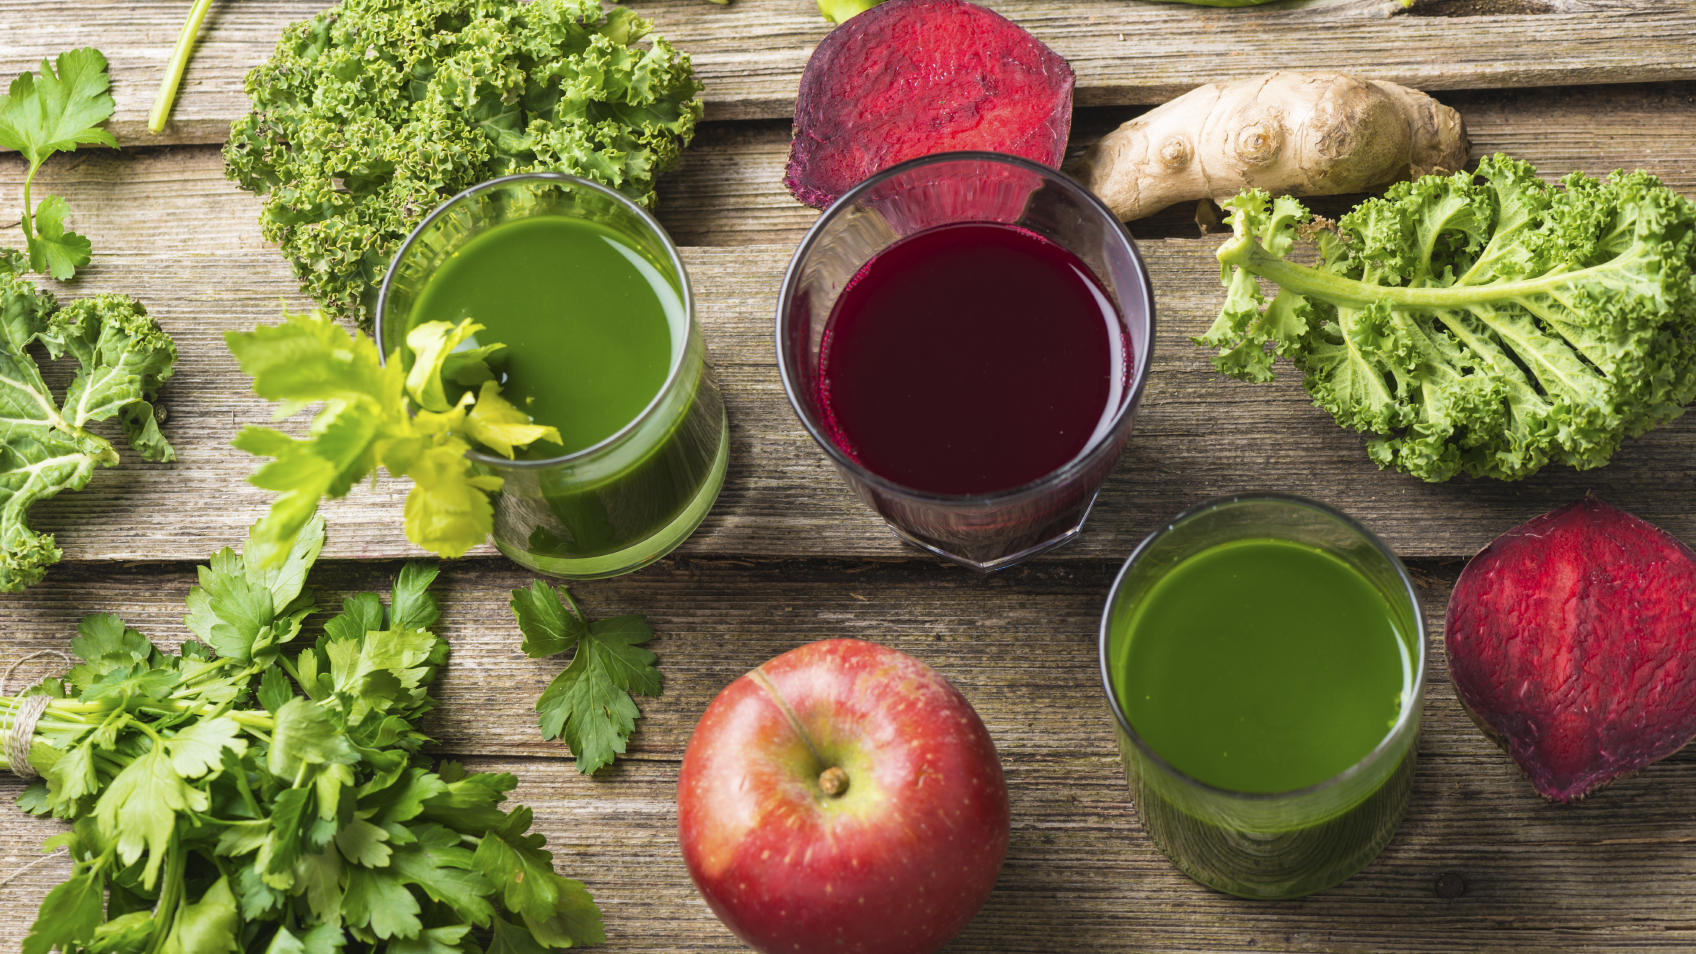 Juice diets don't provide enough nutrients to be sustainable.